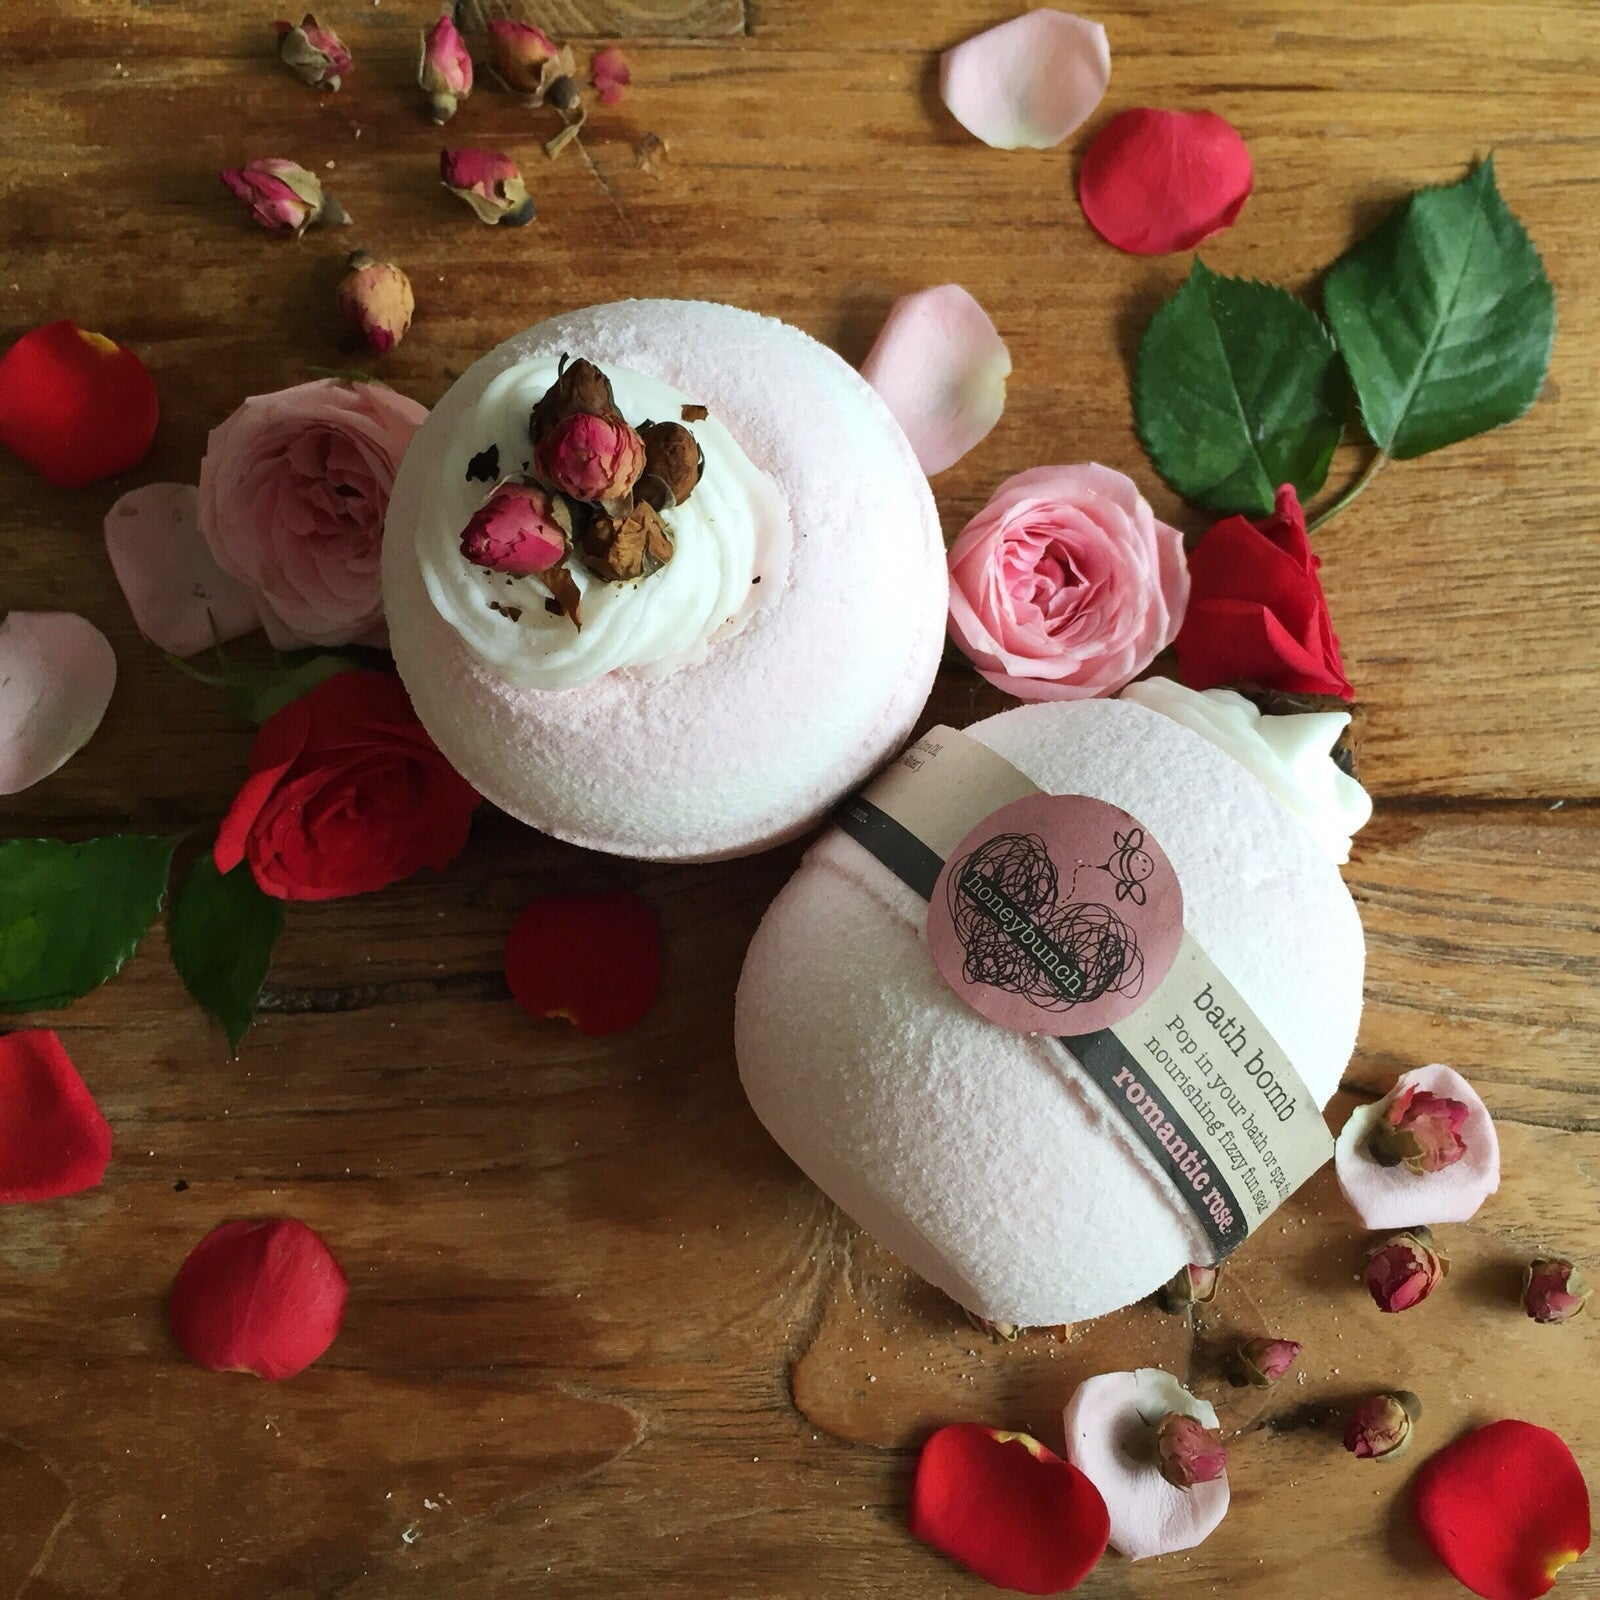 Romantic rose cocoa butter bath bomb